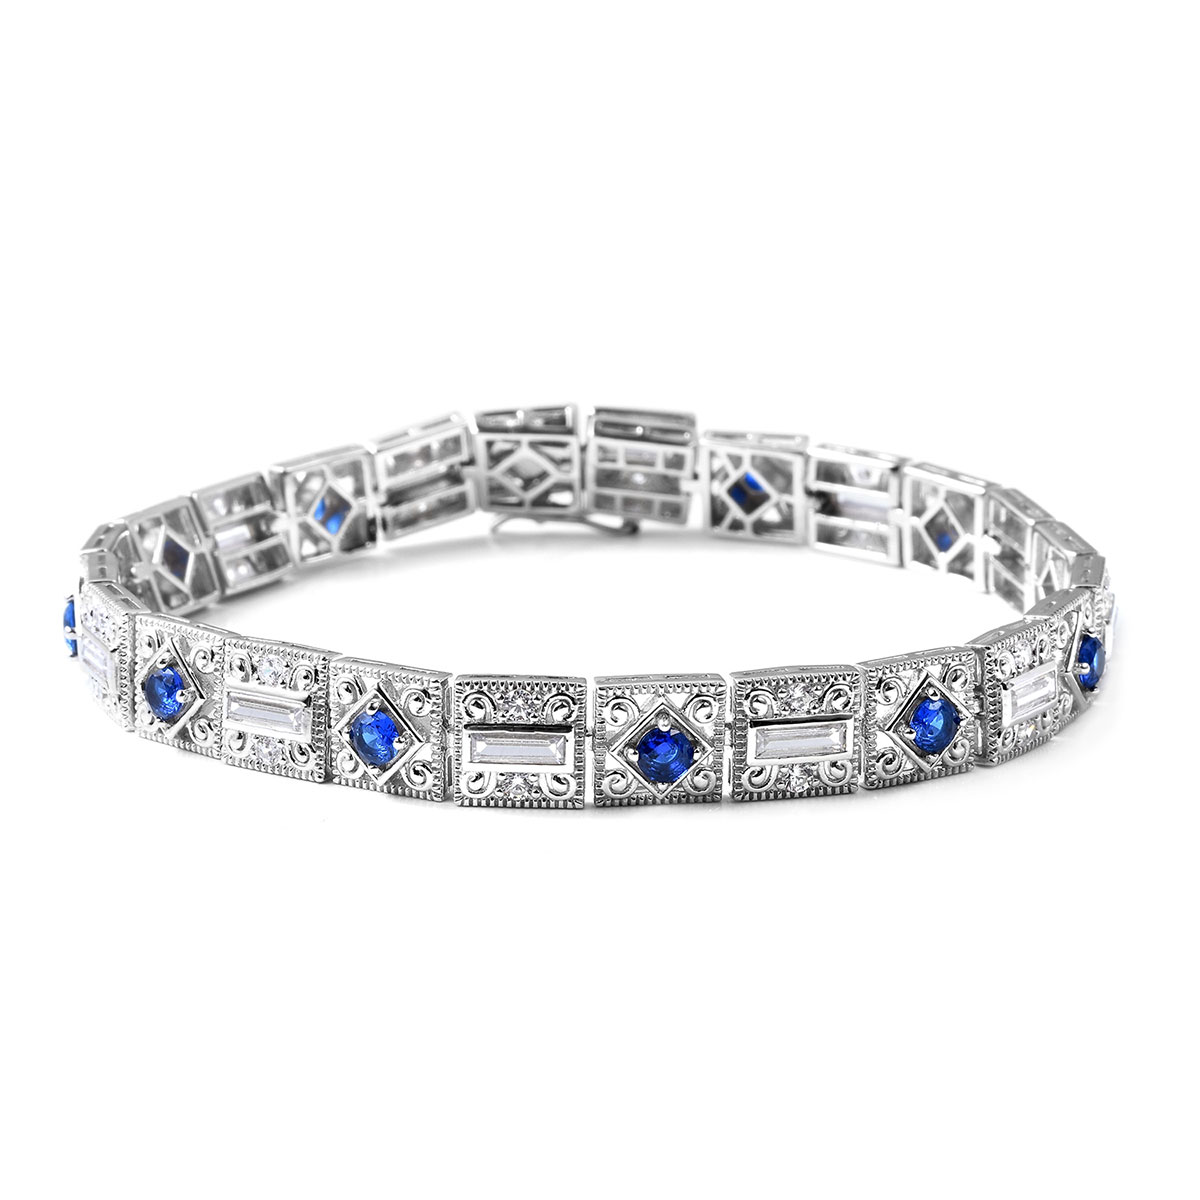 Xavier Simulated Blue And White Diamond Bracelet In Sterling Silver 7 25 18 67 G 15 07 Ctw